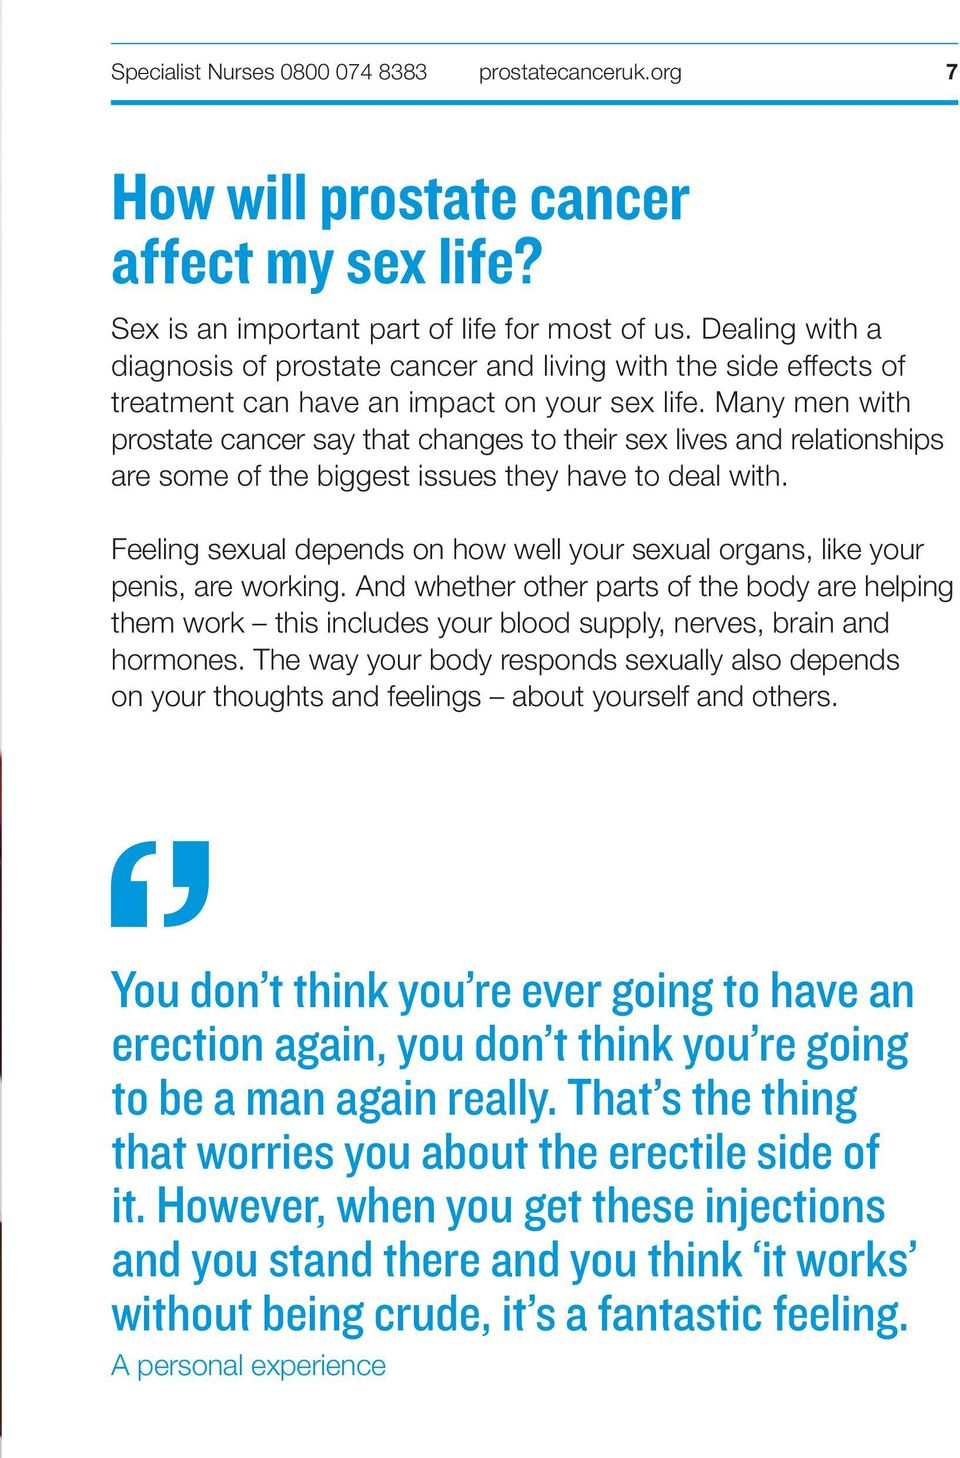 Many men with prostate cancer say that changes to their sex lives and relationships are some of the biggest issues they have to deal with.